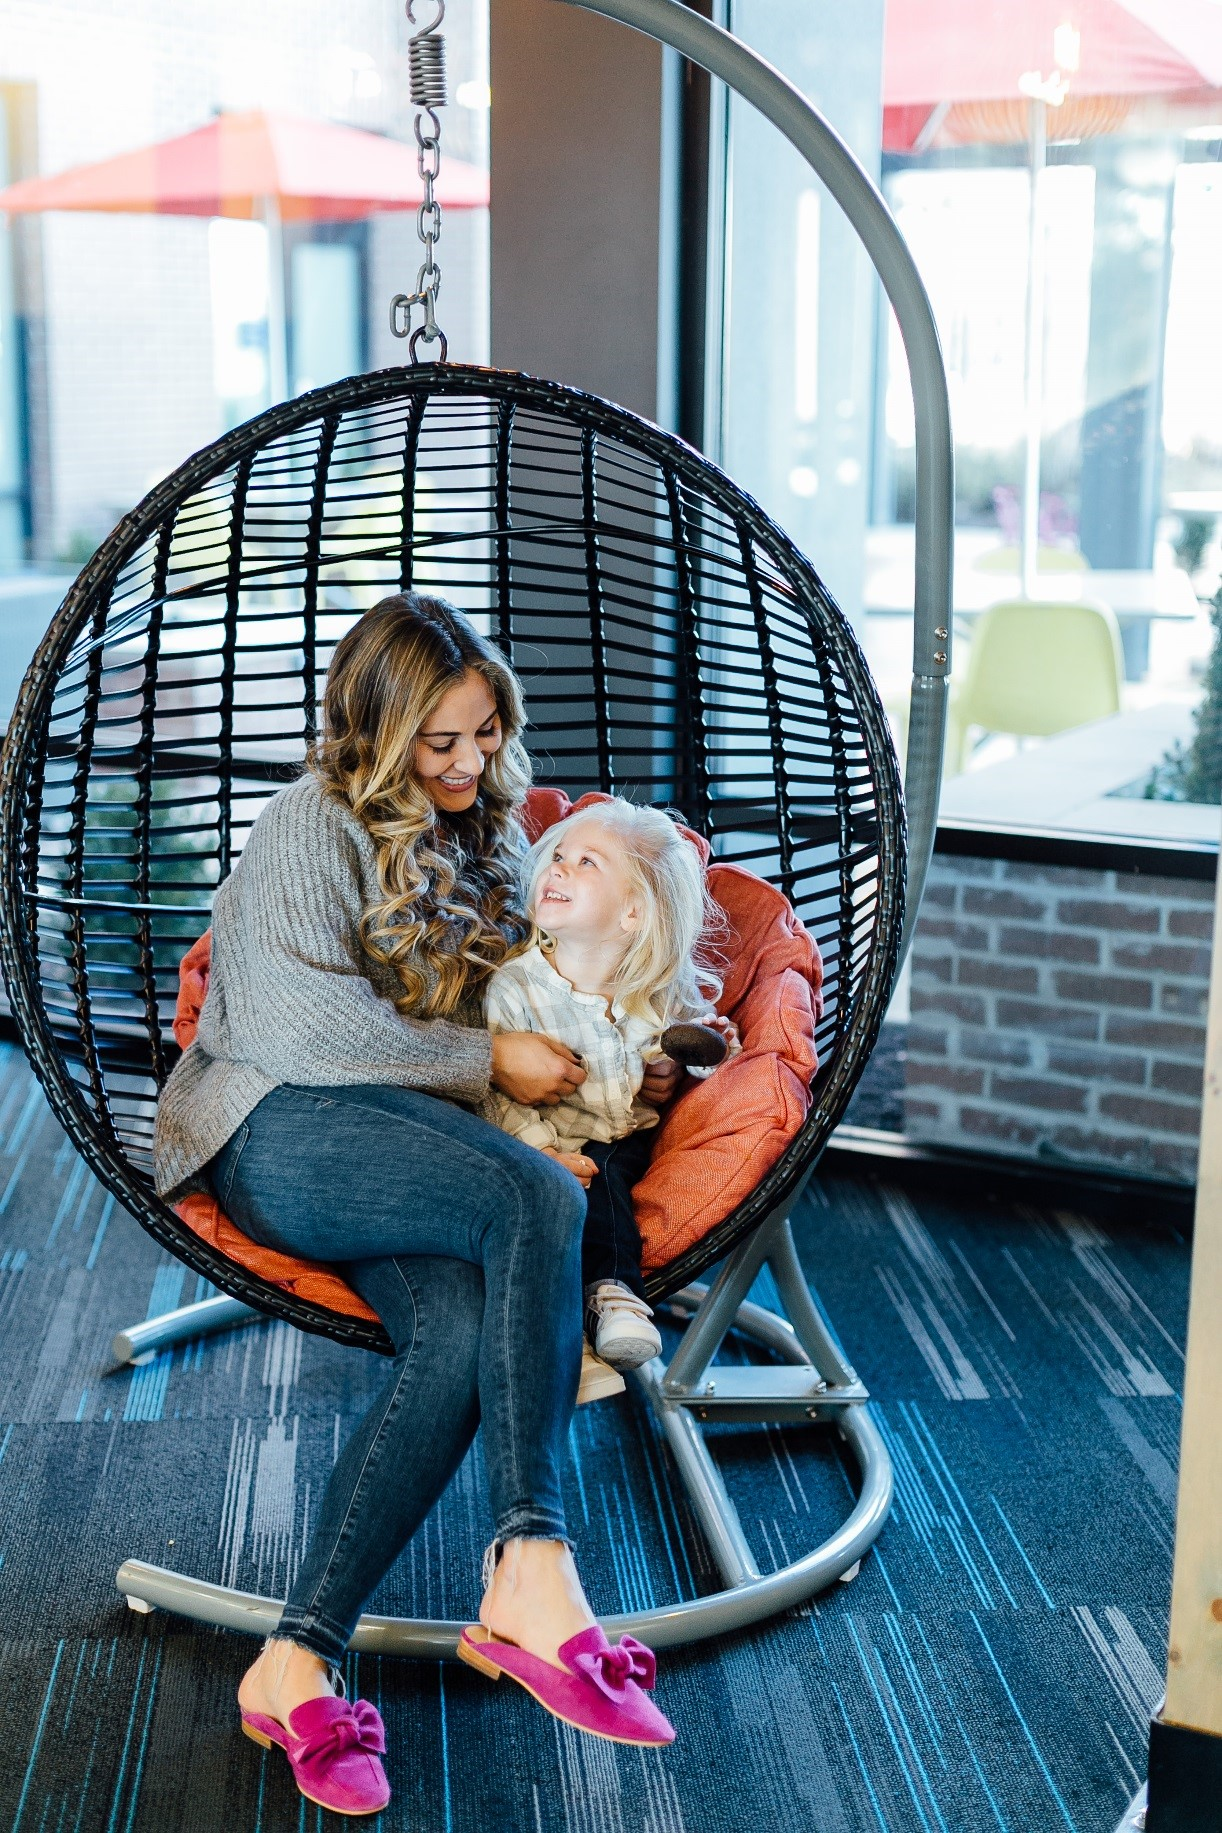 Finding a Family Friendly Hotel by East Memphis mom blogger Walking in Memphis in High Heels